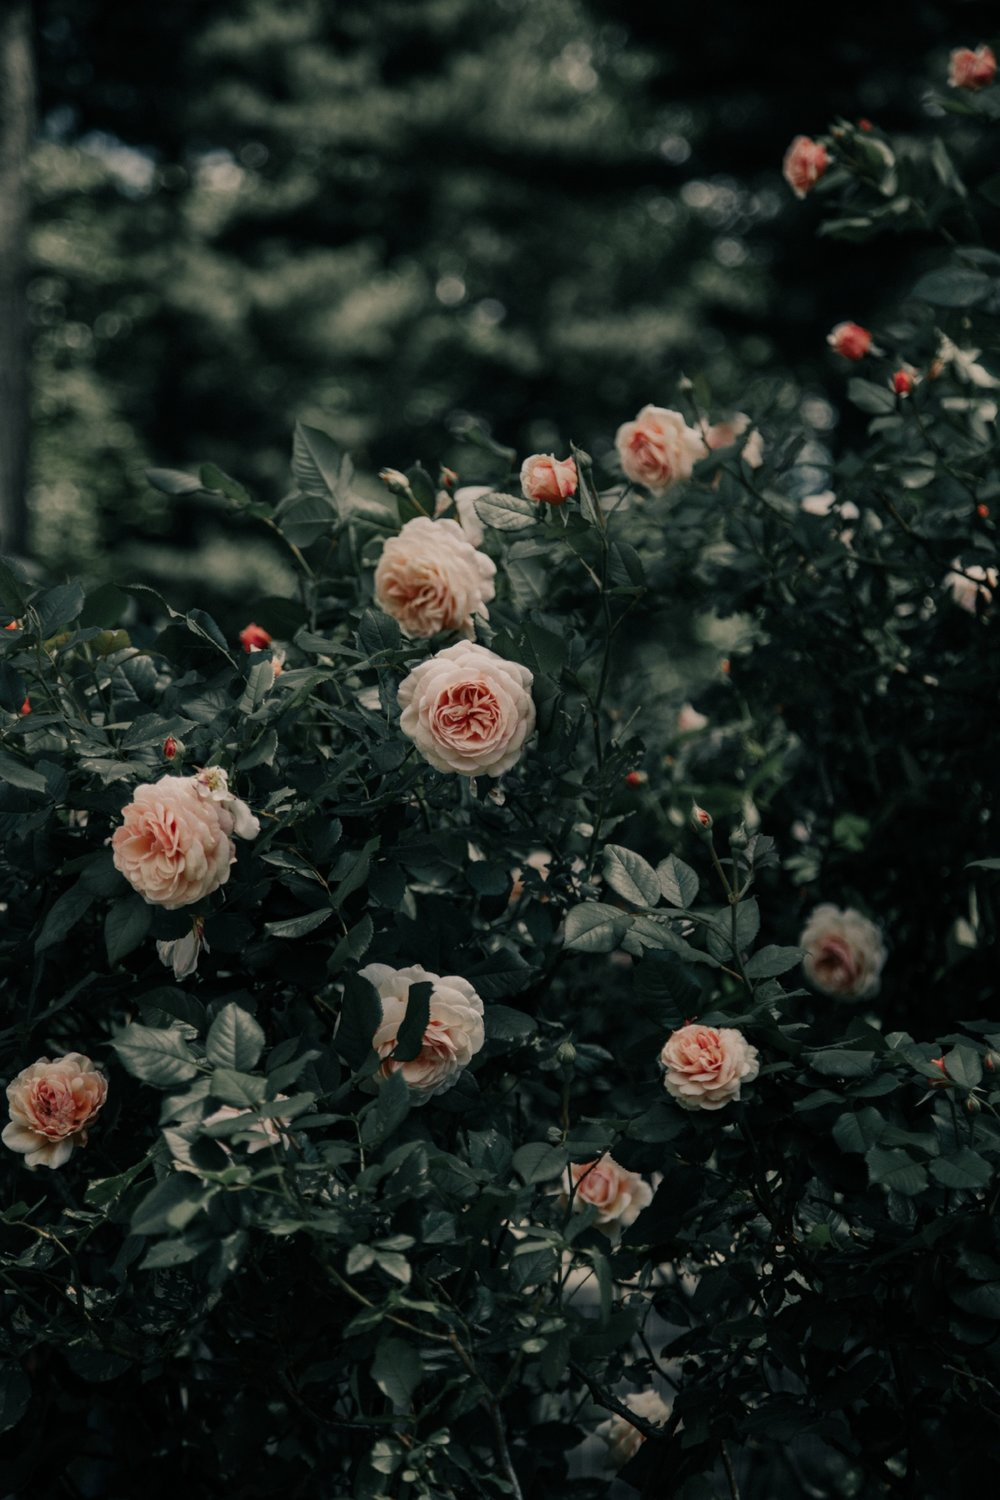 Rose Garden at Central Park by New York City Photographer Desiree Leilani